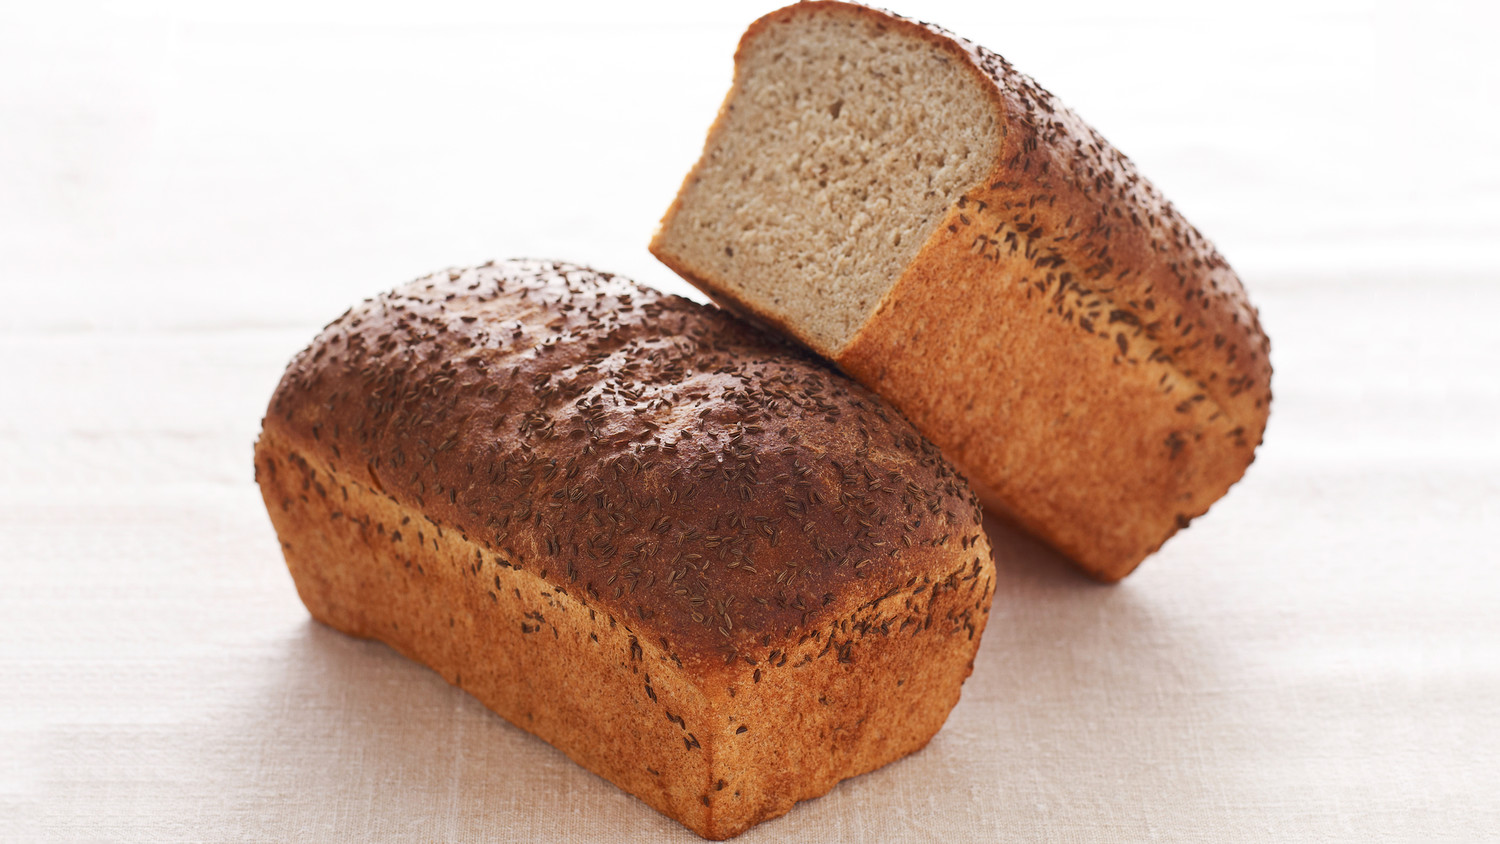 Shower And Bath Ideas Rye Bread Recipe Martha Stewart